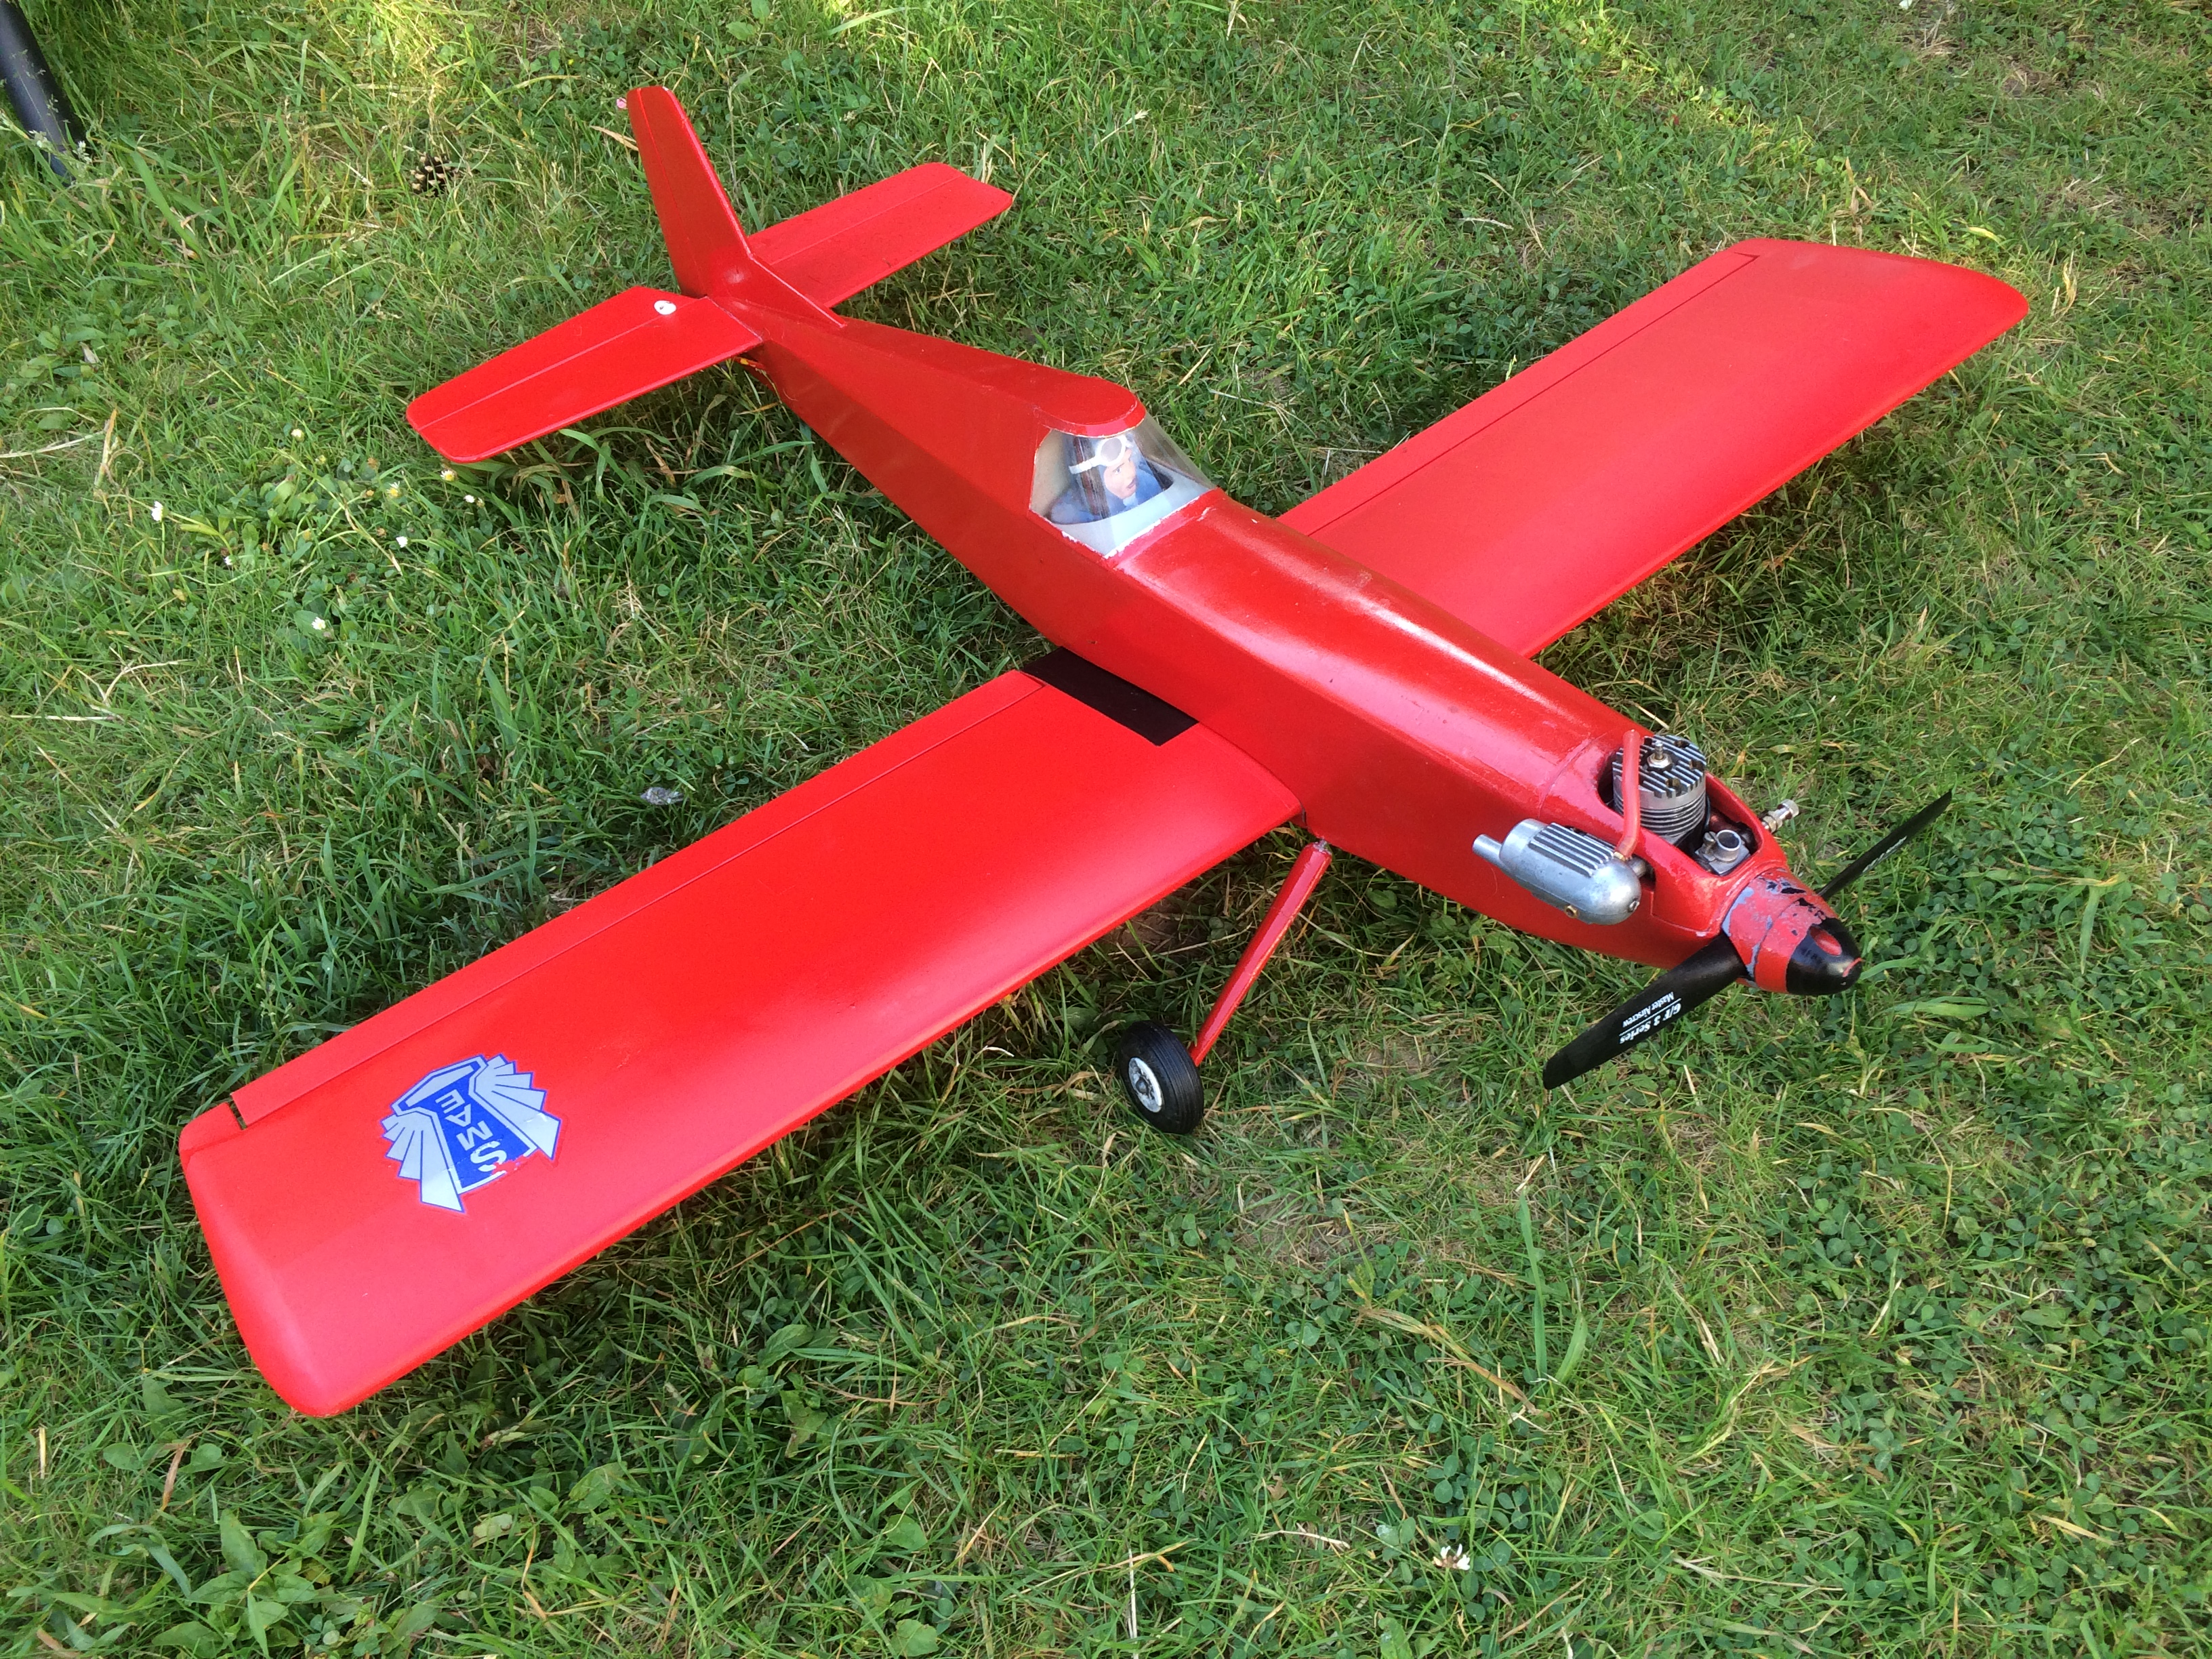 Forsale Vintage Low Wing Aircraft Image11